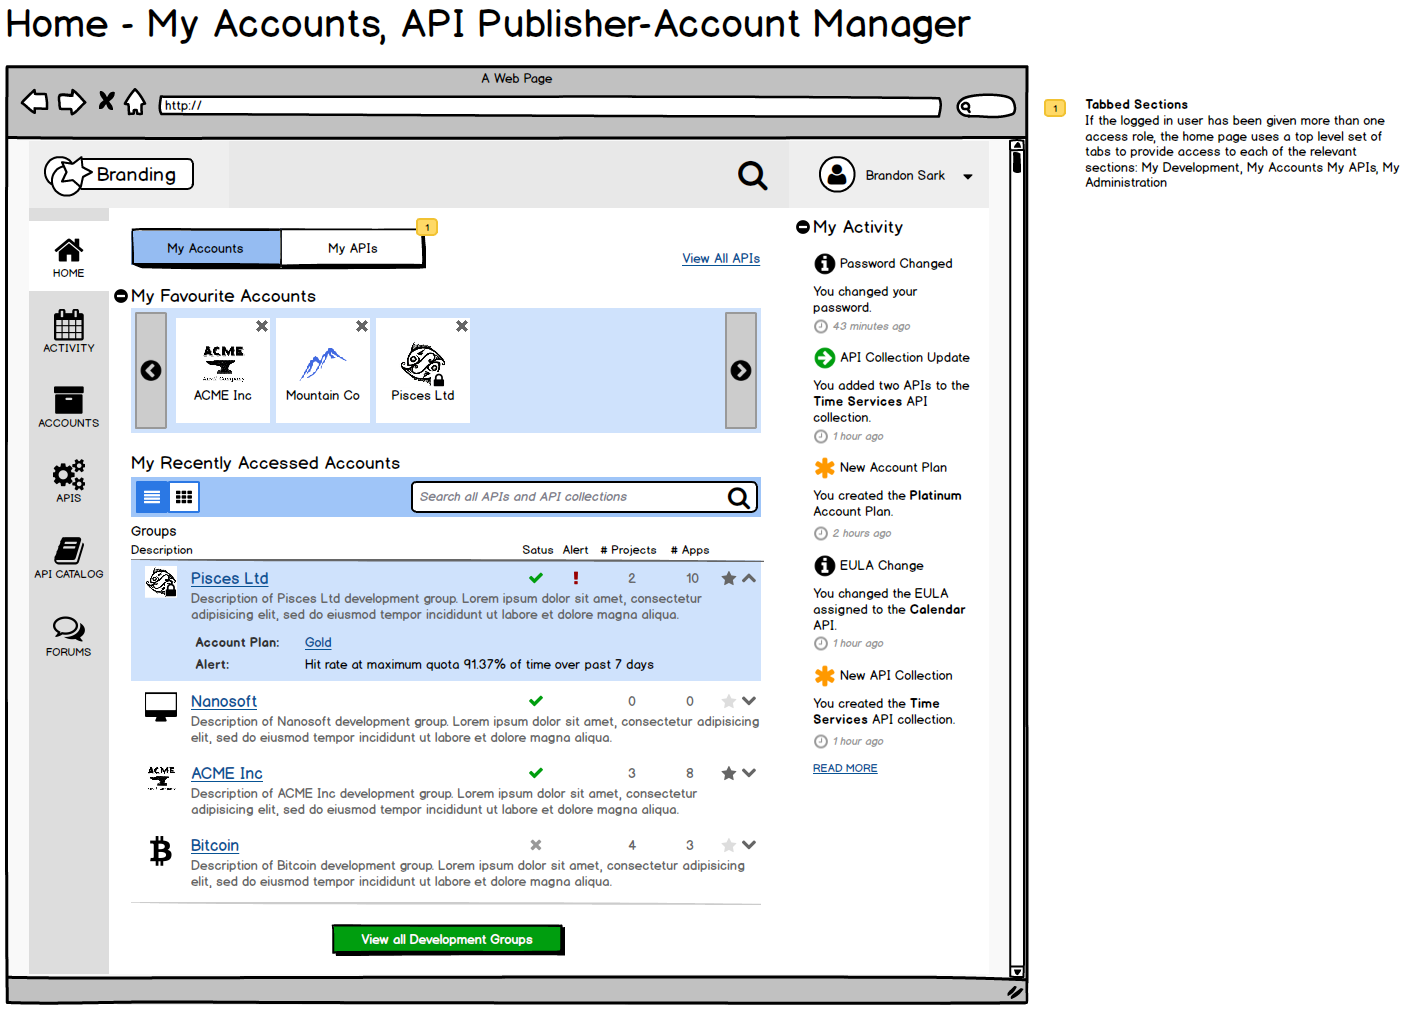 Home Page: API Publisher & Account Manager